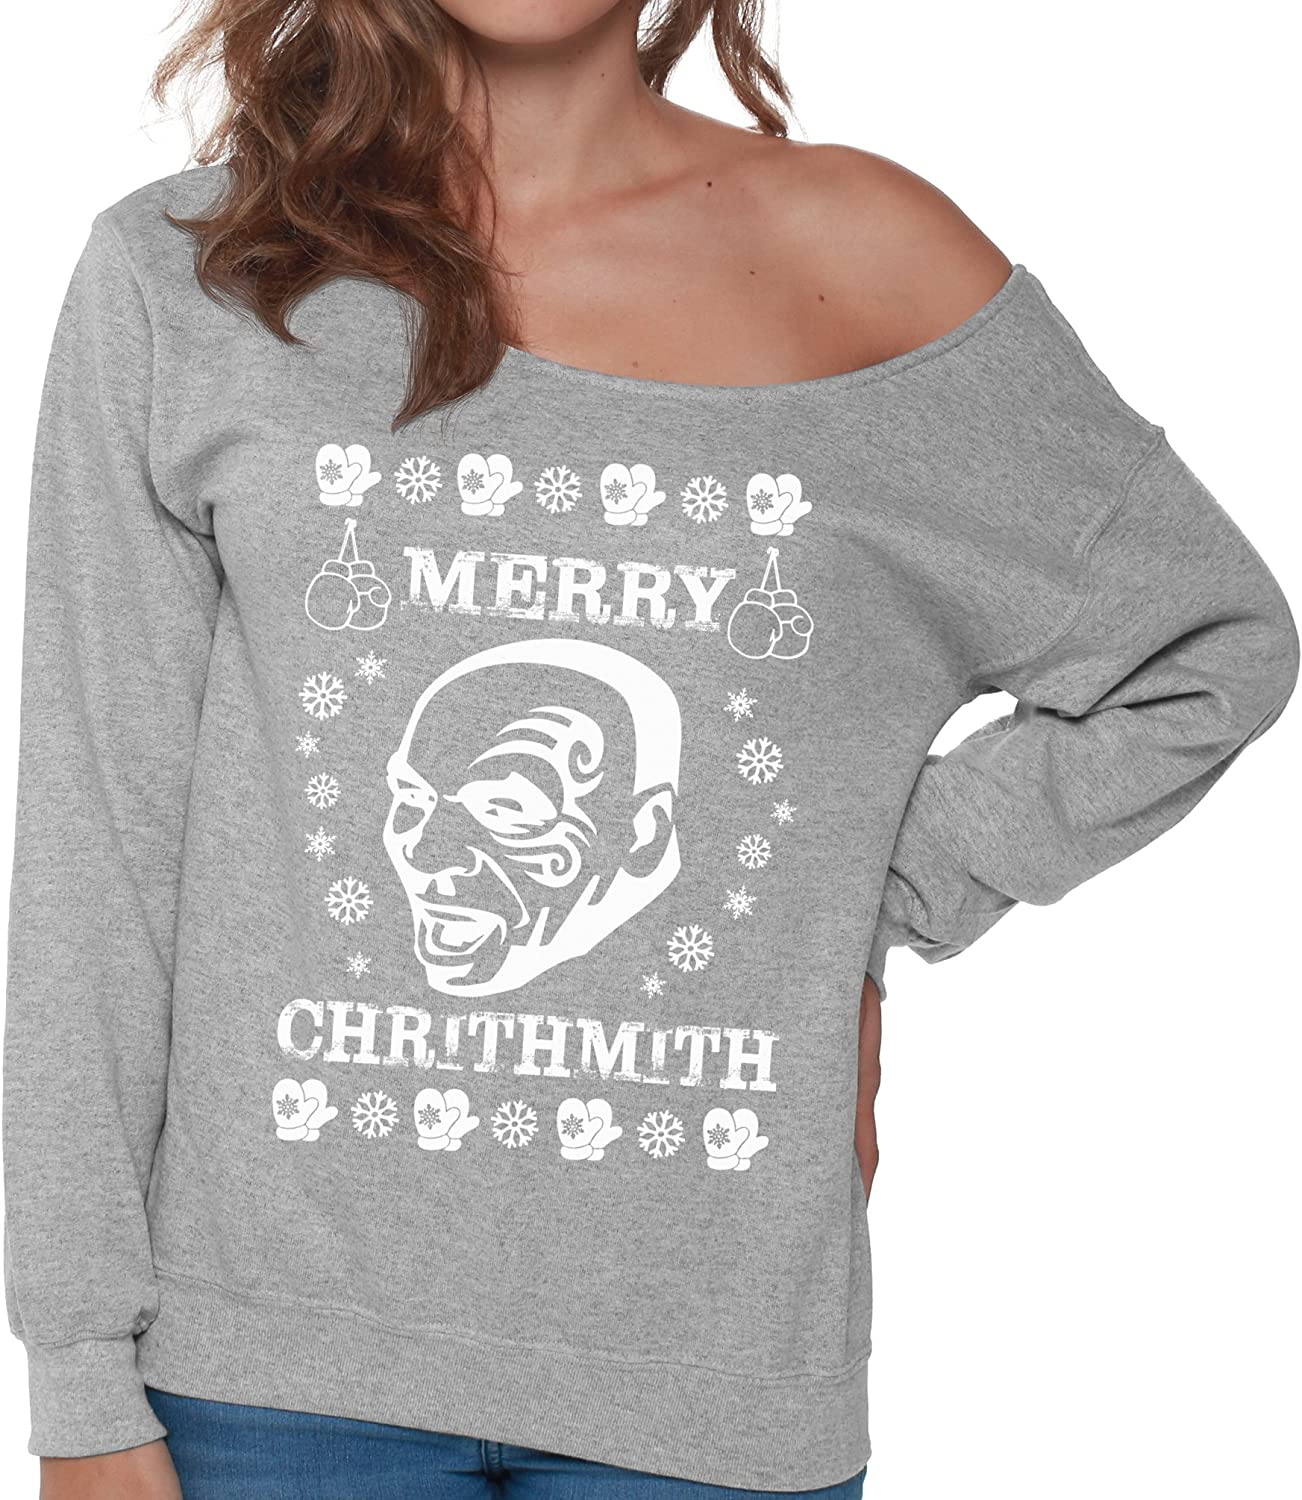 Christmas Sweater for women Off Shoulder Merry Chrithmith Sweatshirt Xmas Gifts